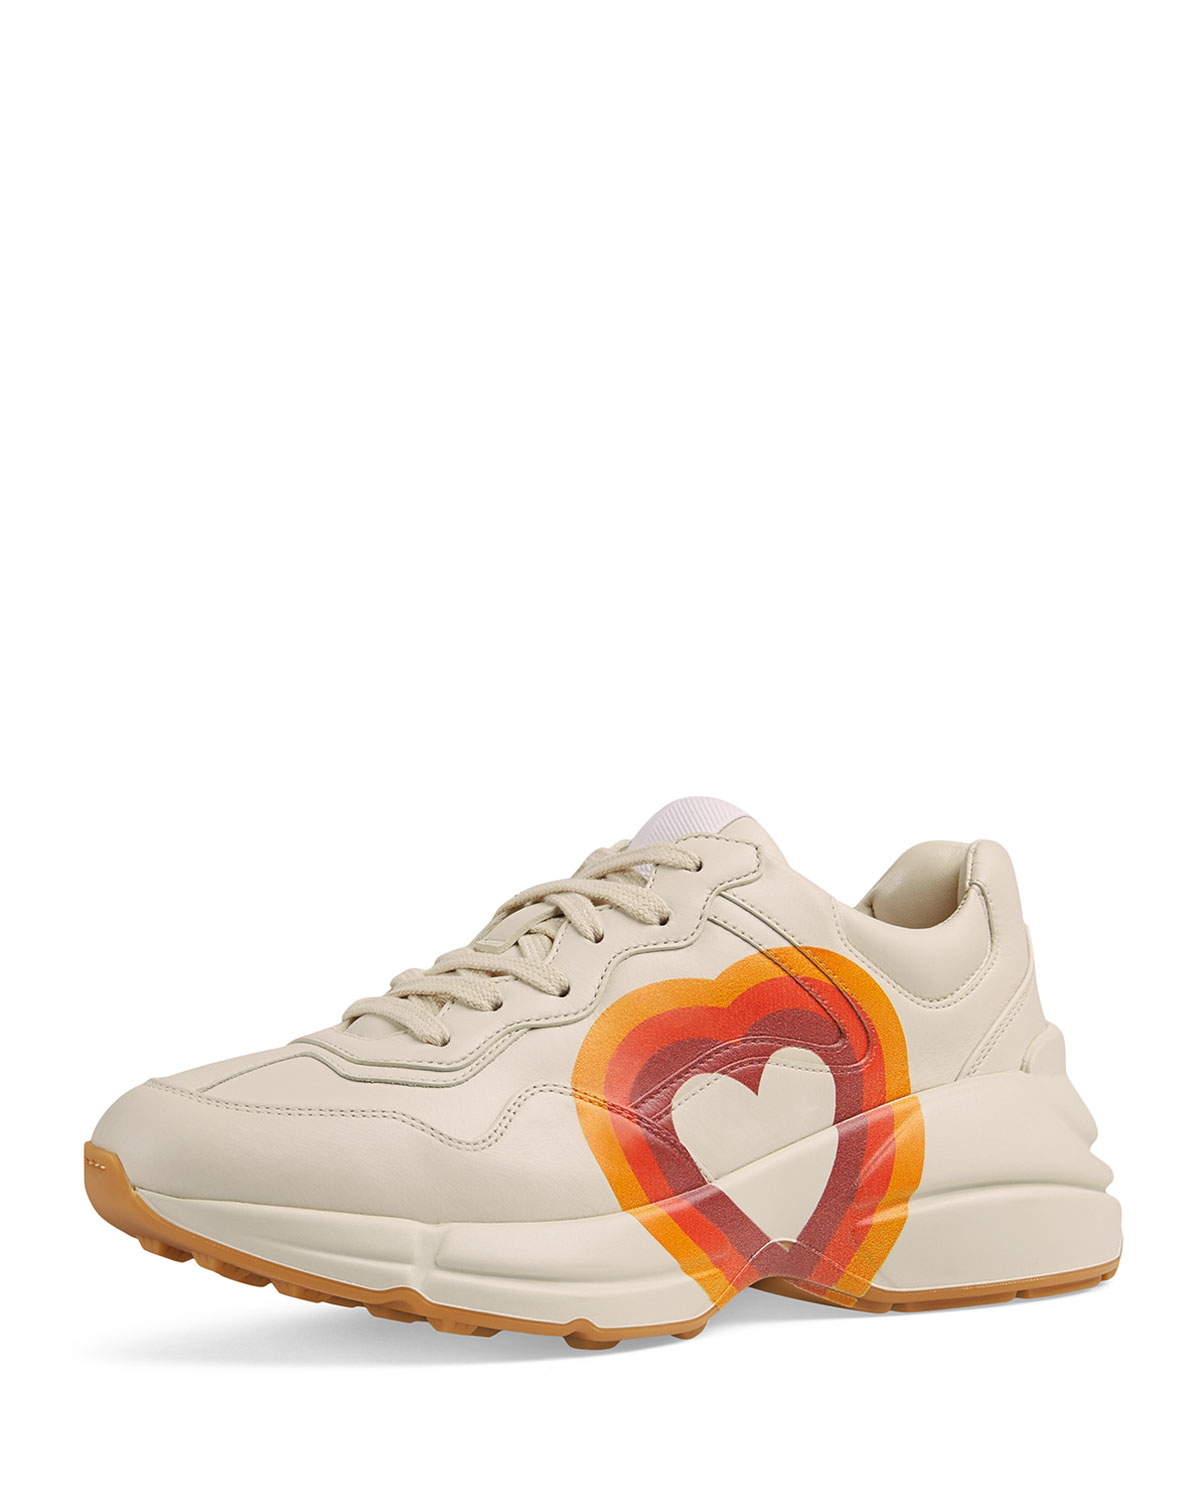 Interlocking G/Heart Leather Sneakers in Mystic White